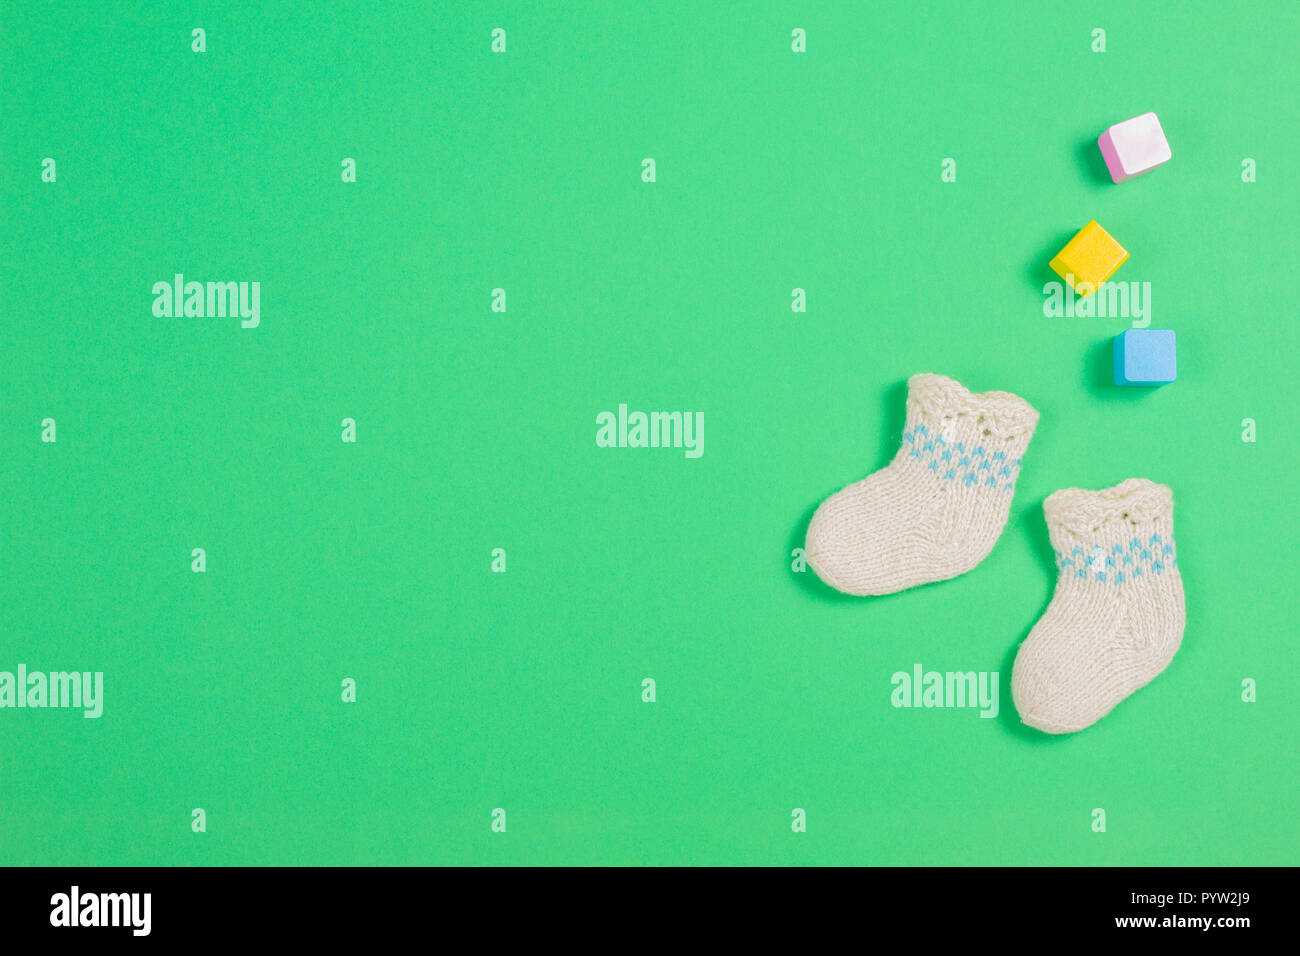 Knitted baby wool socks and wooden bricks on green background. - Stock Image